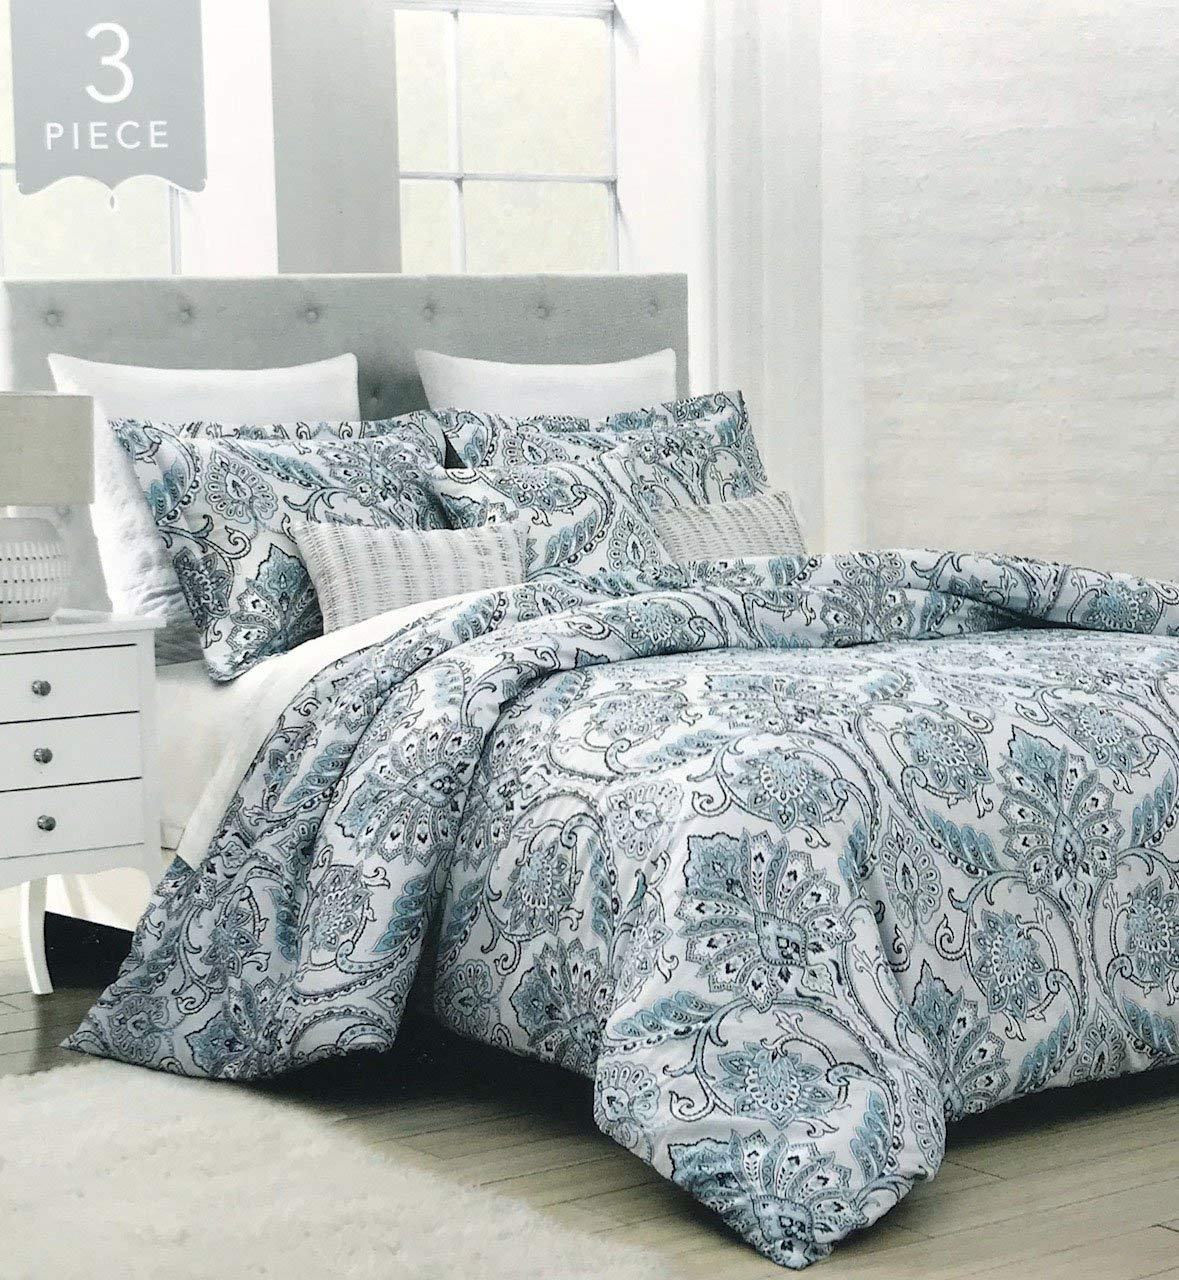 ENVOGUE Majestic Paisley Damask Duvet Cover 3pc Set Boho Chic Bohemian Damask Medallion (Peacock Blue, Queen)